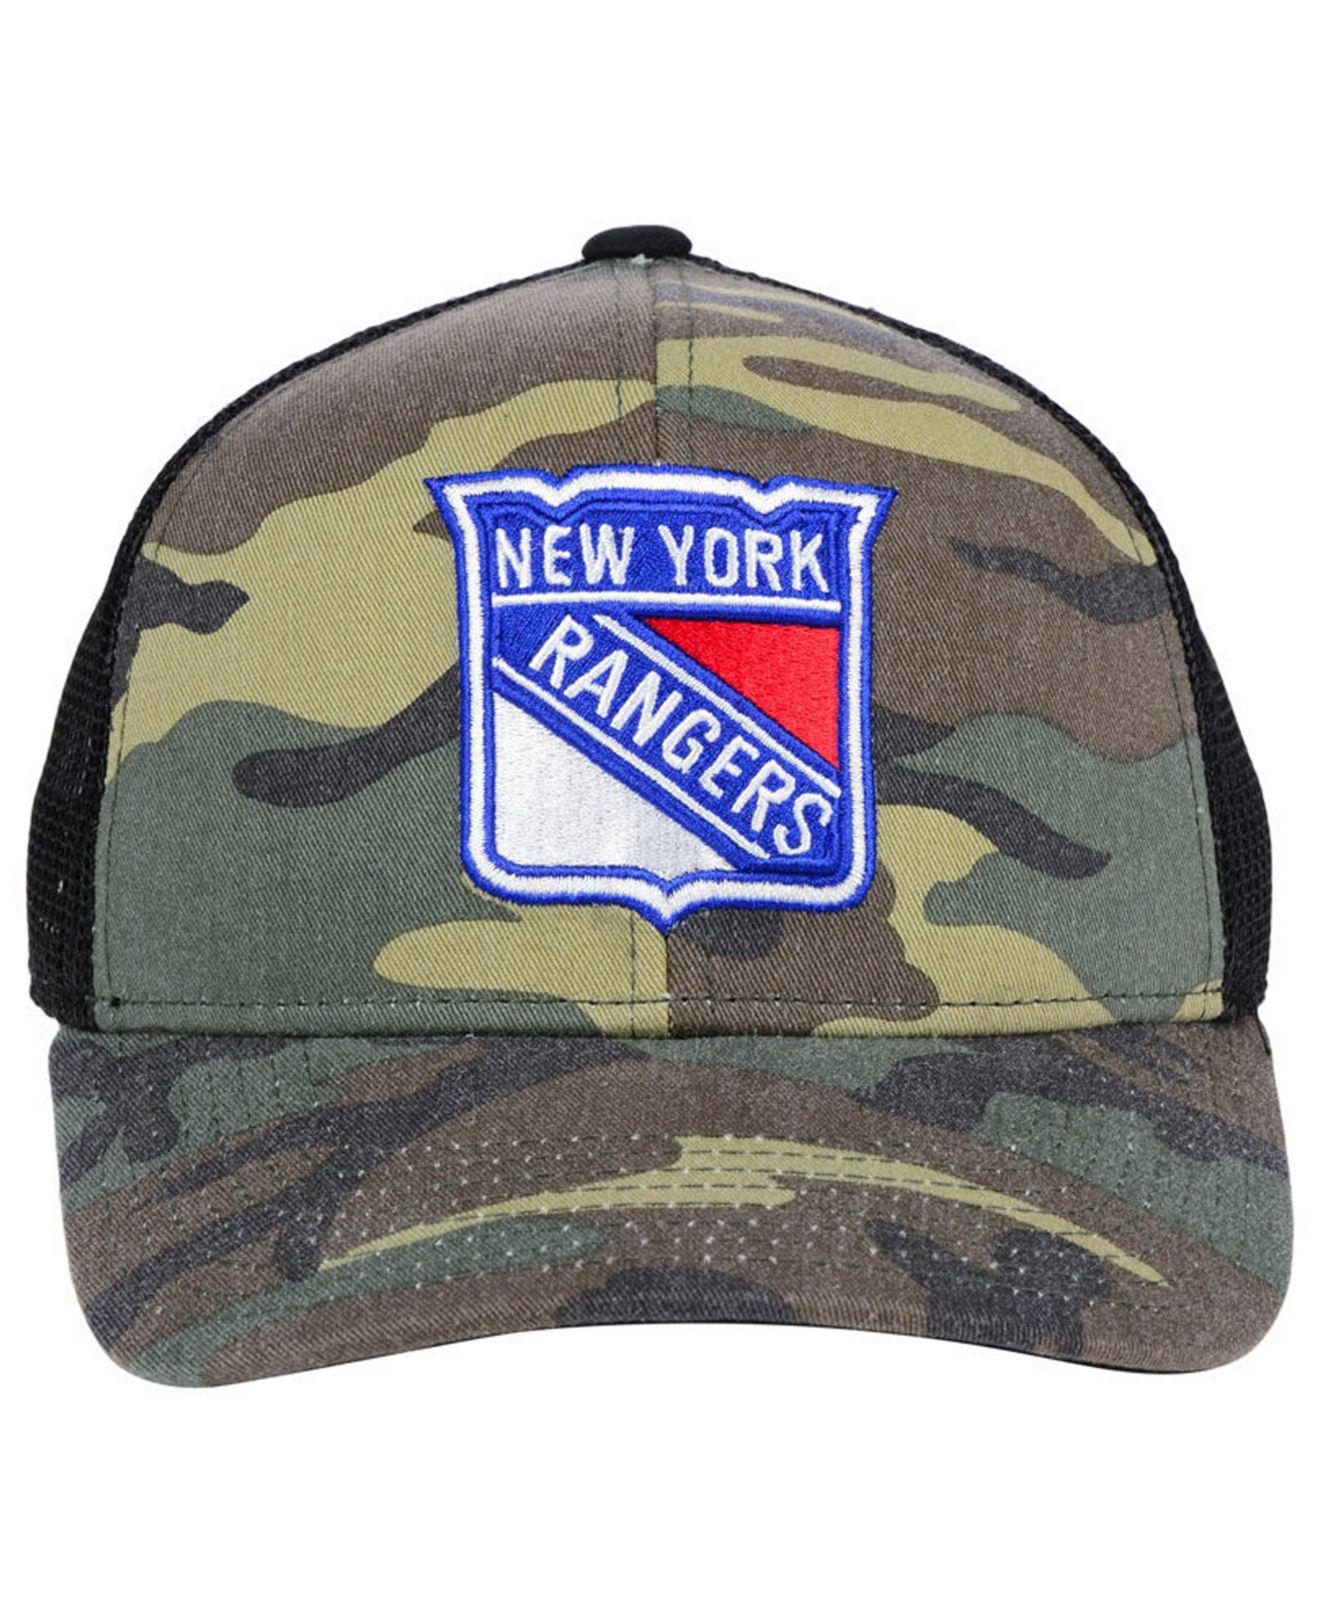 low cost 03a7a feeb0 ... coupon for lyst adidas new york rangers camo trucker cap for men 5818a  8773a